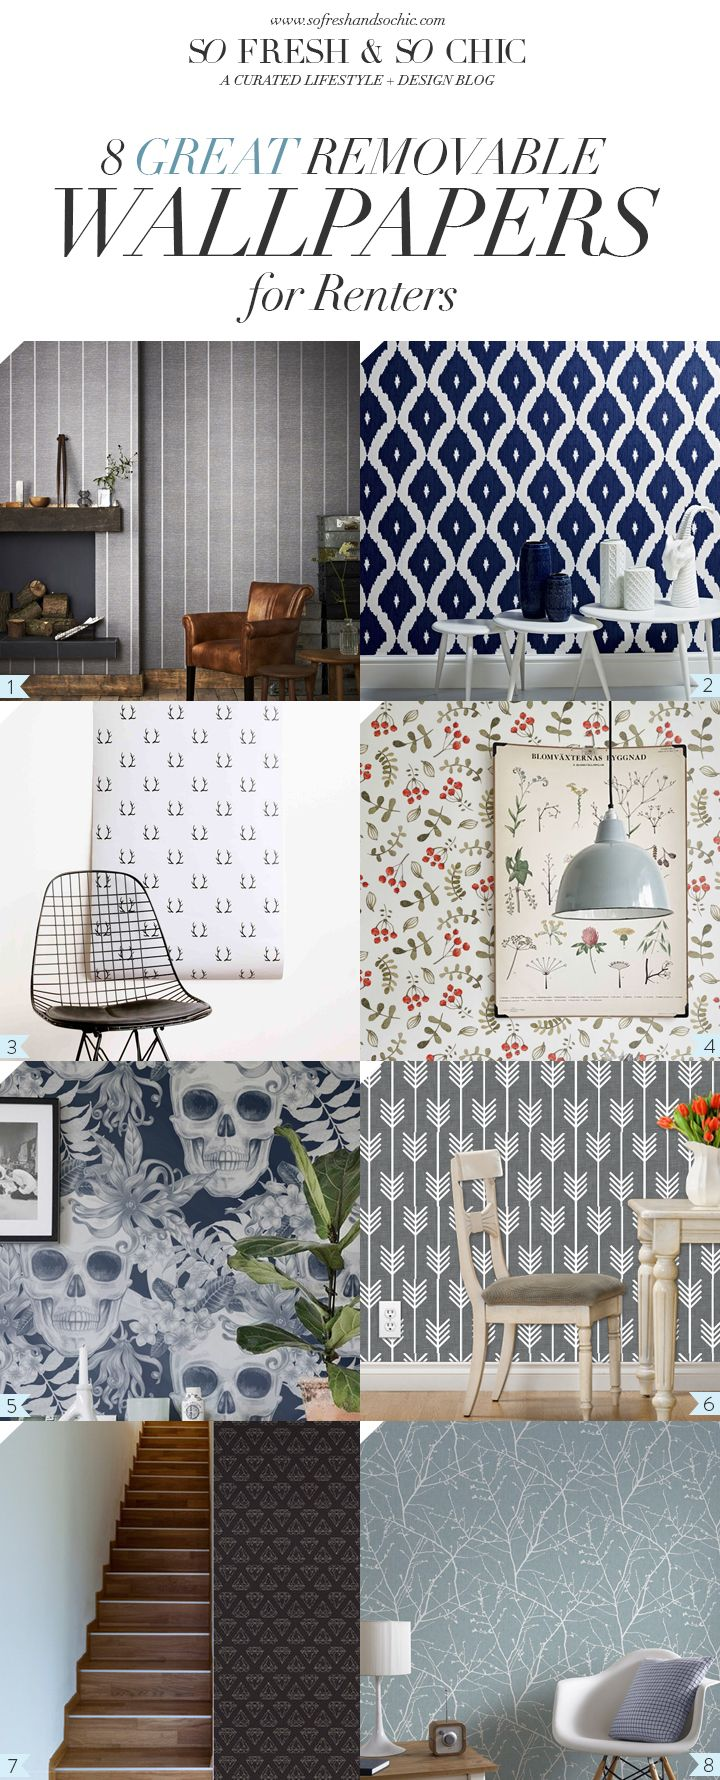 For the Home] 8 Great Removable Wallpapers for Renters | Wallpaper ...